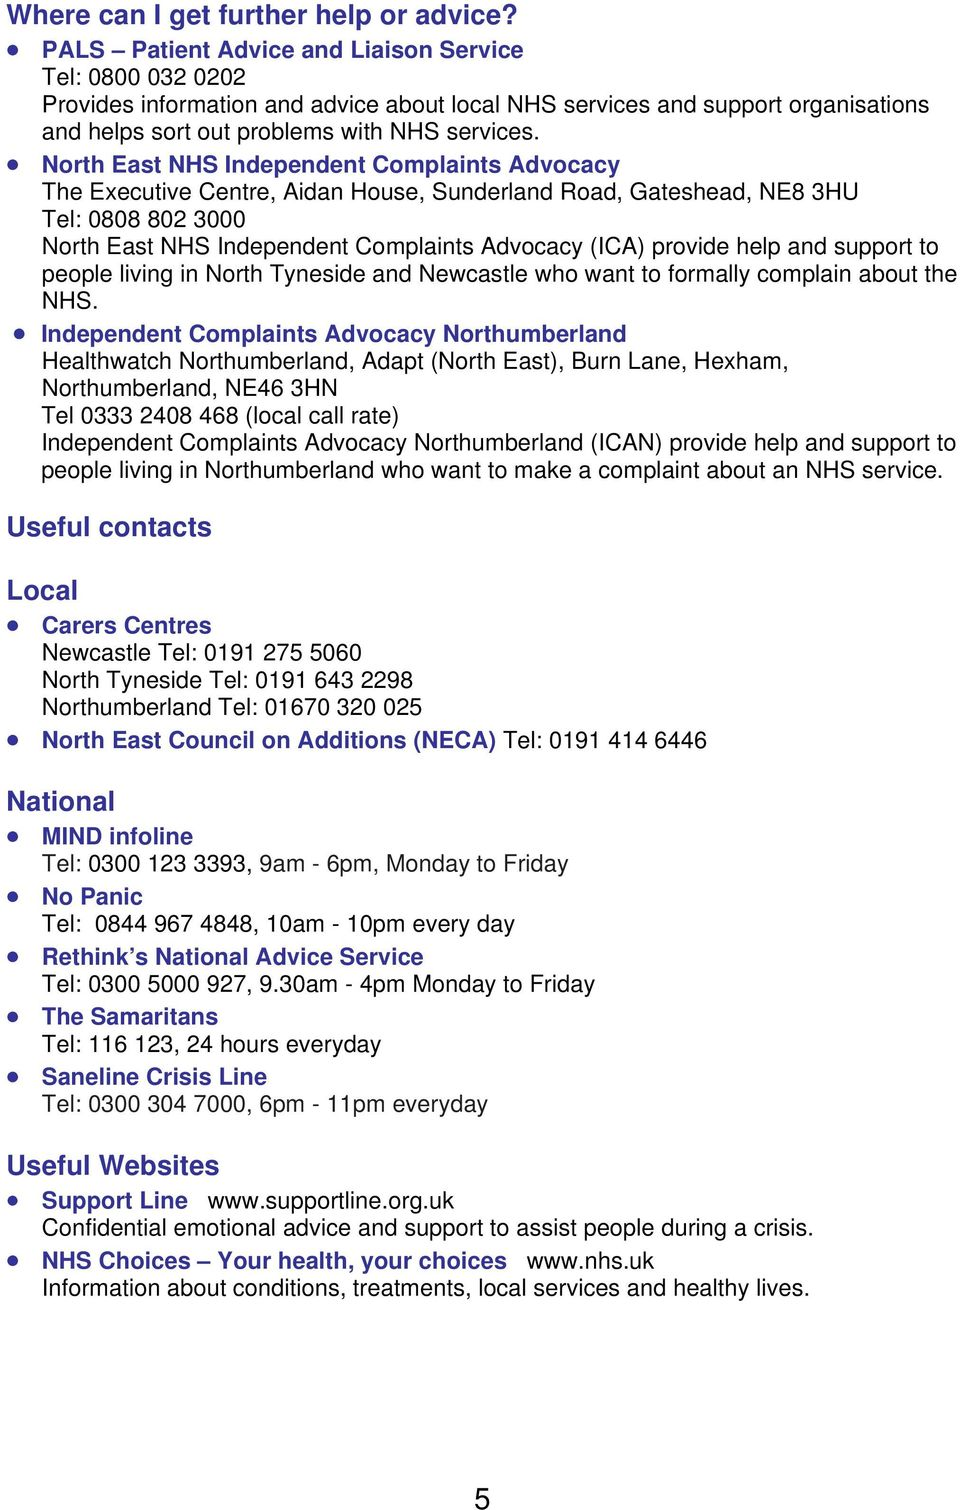 North East NHS Independent Complaints Advocacy The Executive Centre, Aidan House, Sunderland Road, Gateshead, NE8 3HU Tel: 0808 802 3000 North East NHS Independent Complaints Advocacy (ICA) provide